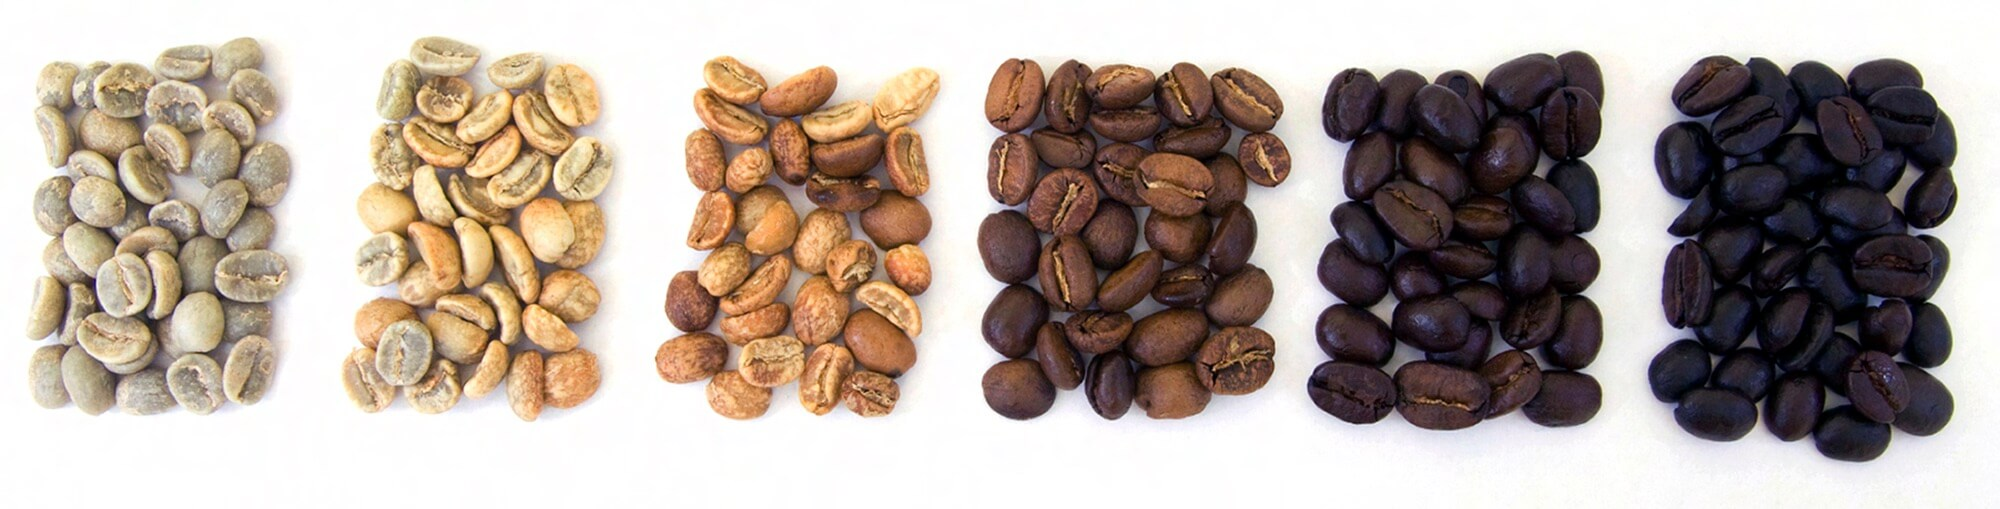 best coffee beans brand